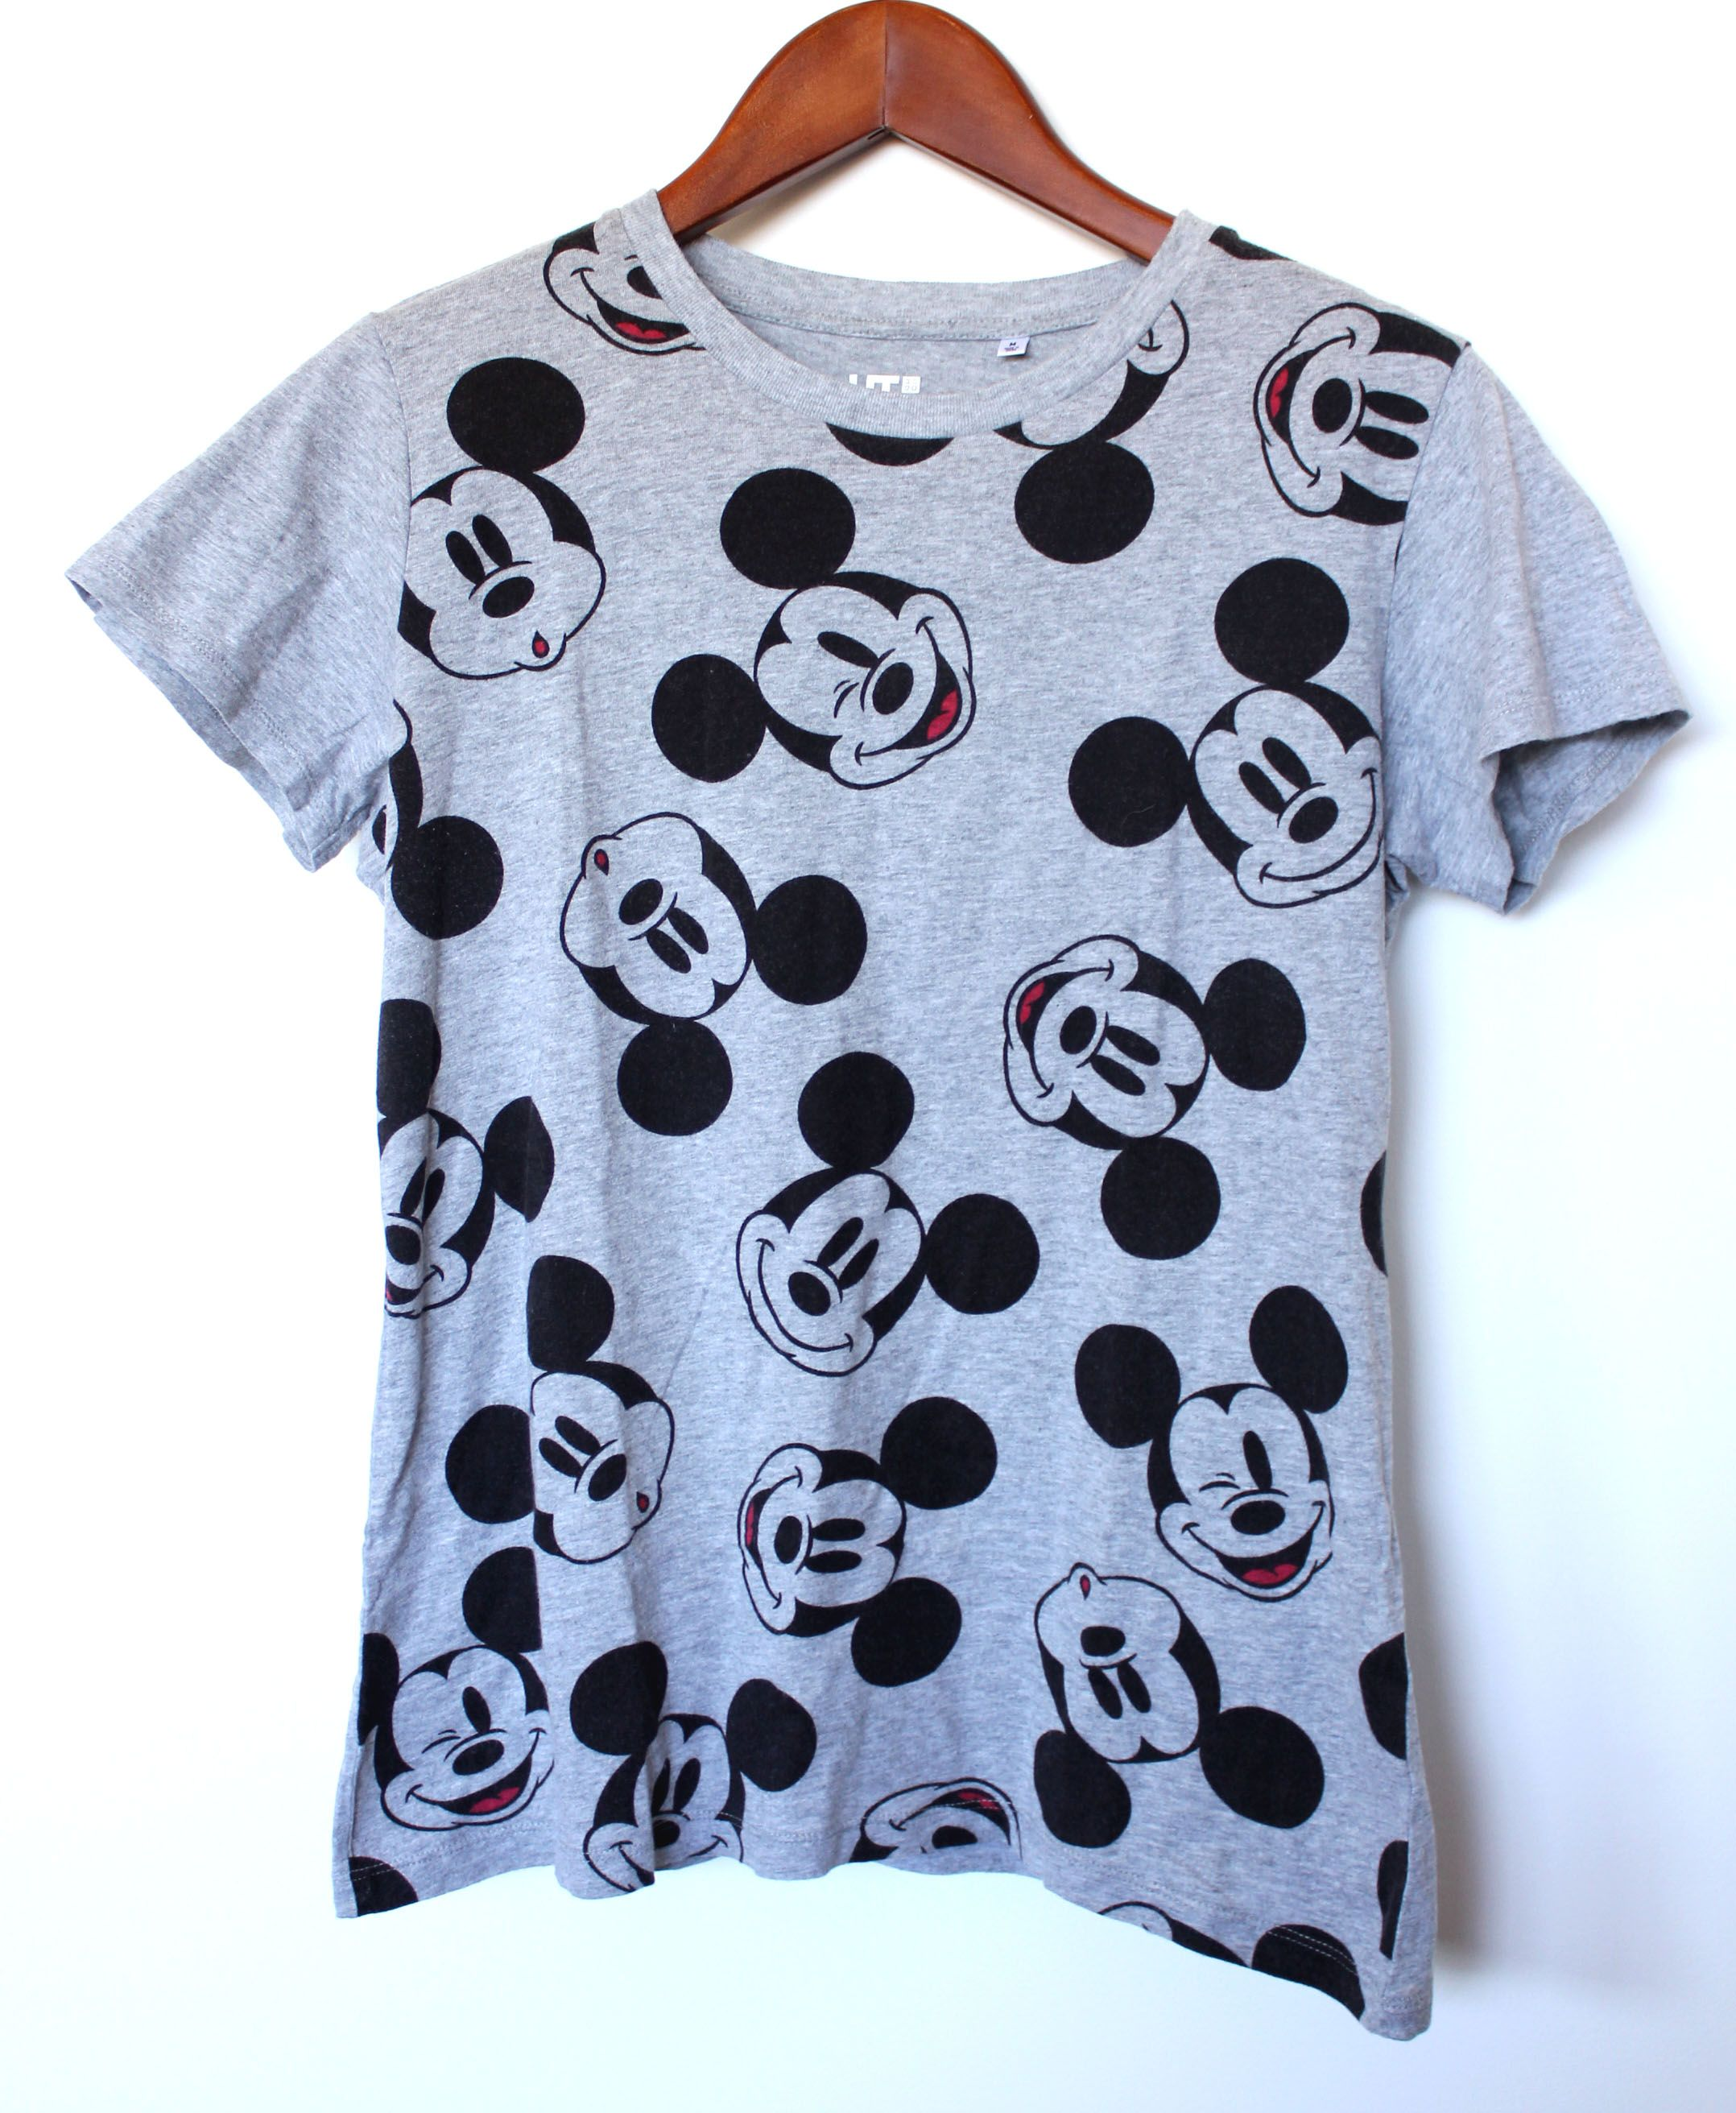 Uniqlo Ladies Size M Grey Mickey Mouse Disney Character T Shirt Top Tops Shirts Vintage Outfits